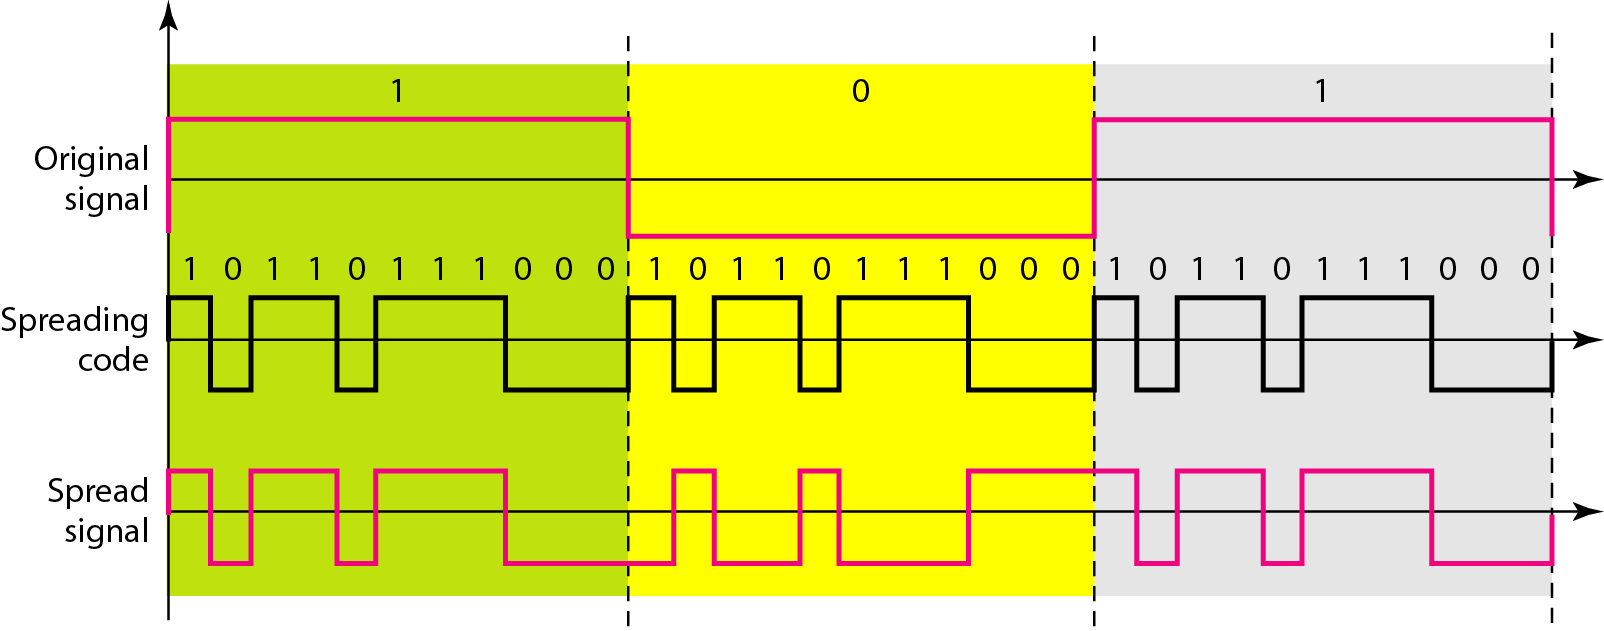 Figure 9.8 Direct Sequence Spread Spectrum Example In Figure 9.9, the spreading code is 11 bits chip (Barker chip) with the pattern 10110111000 (in this case).